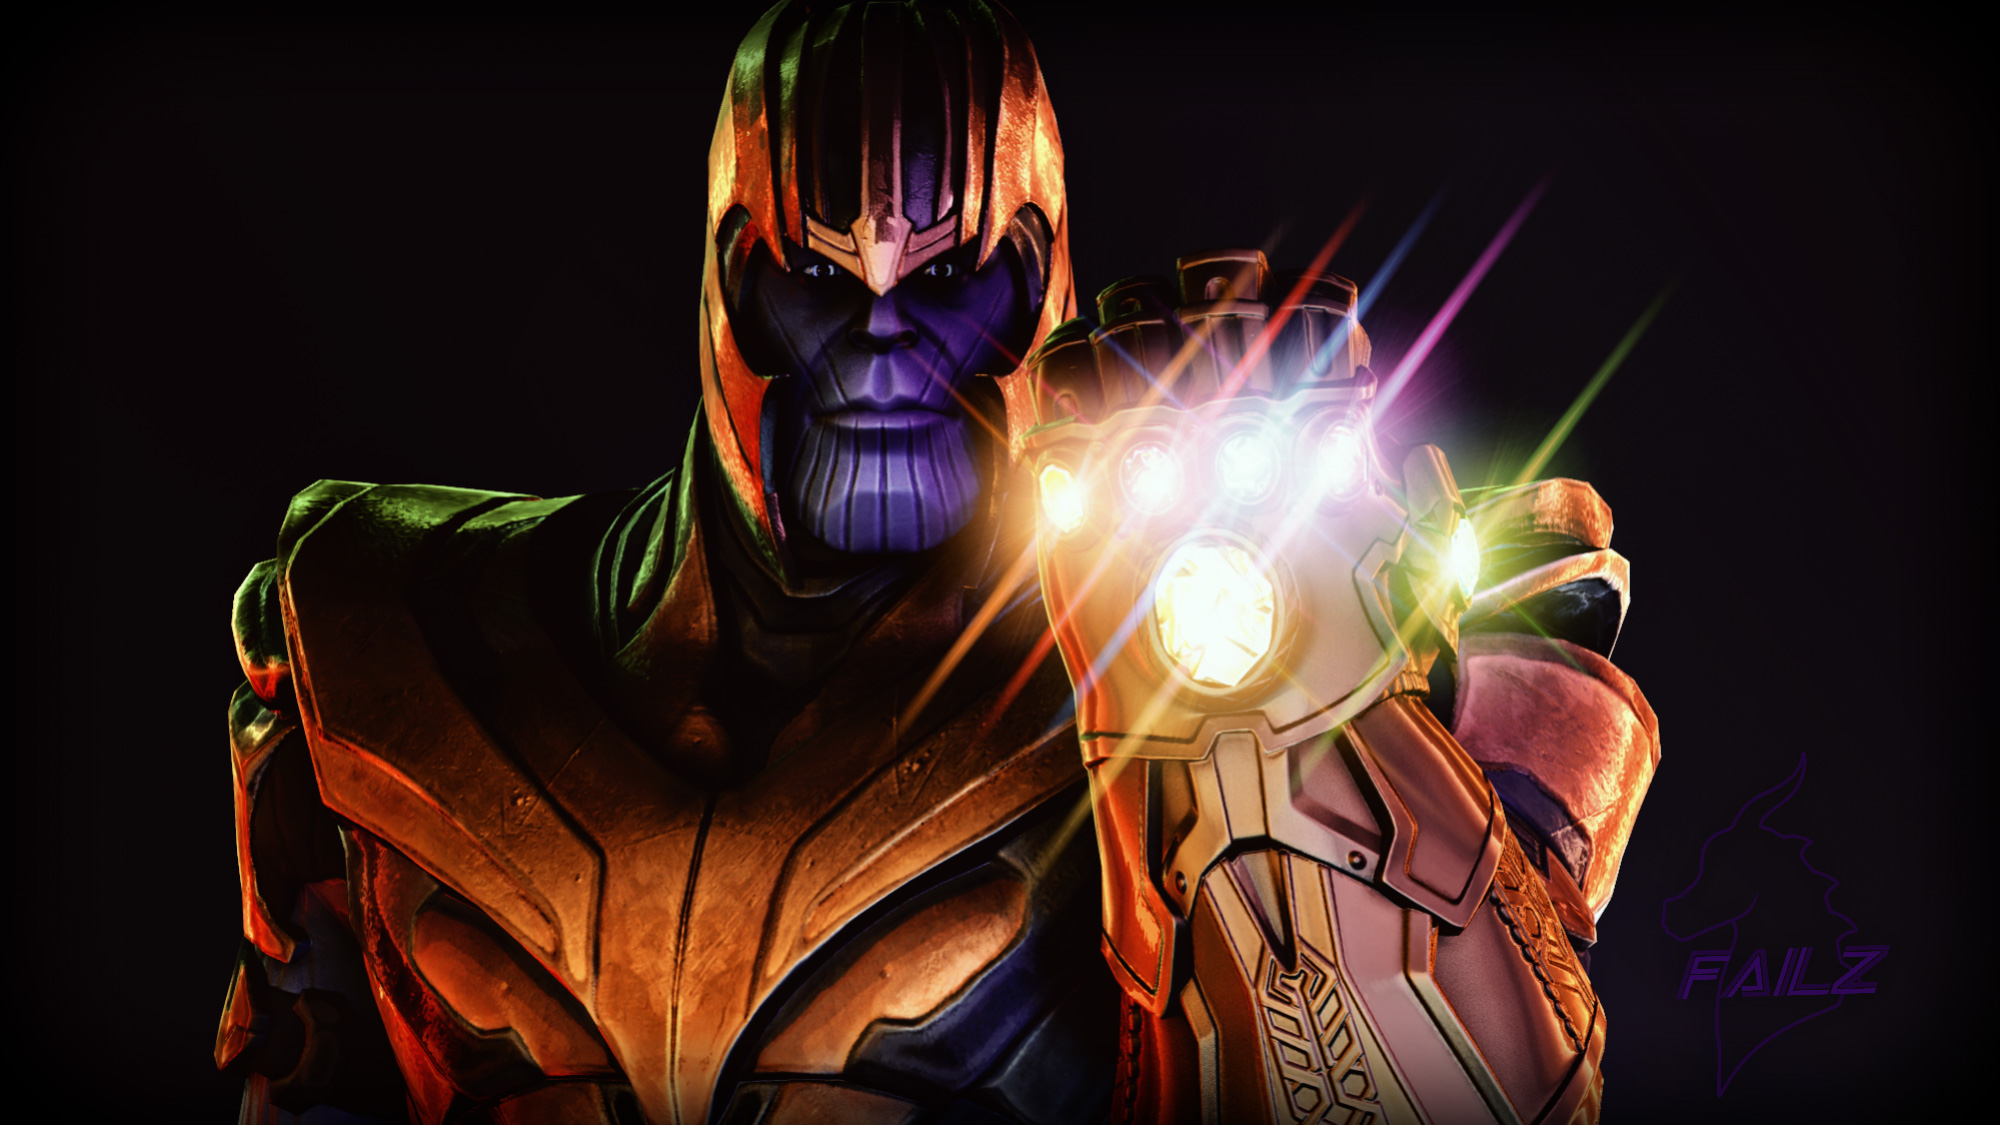 Thanos Hd Wallpaper: Gauntlet Wallpapers